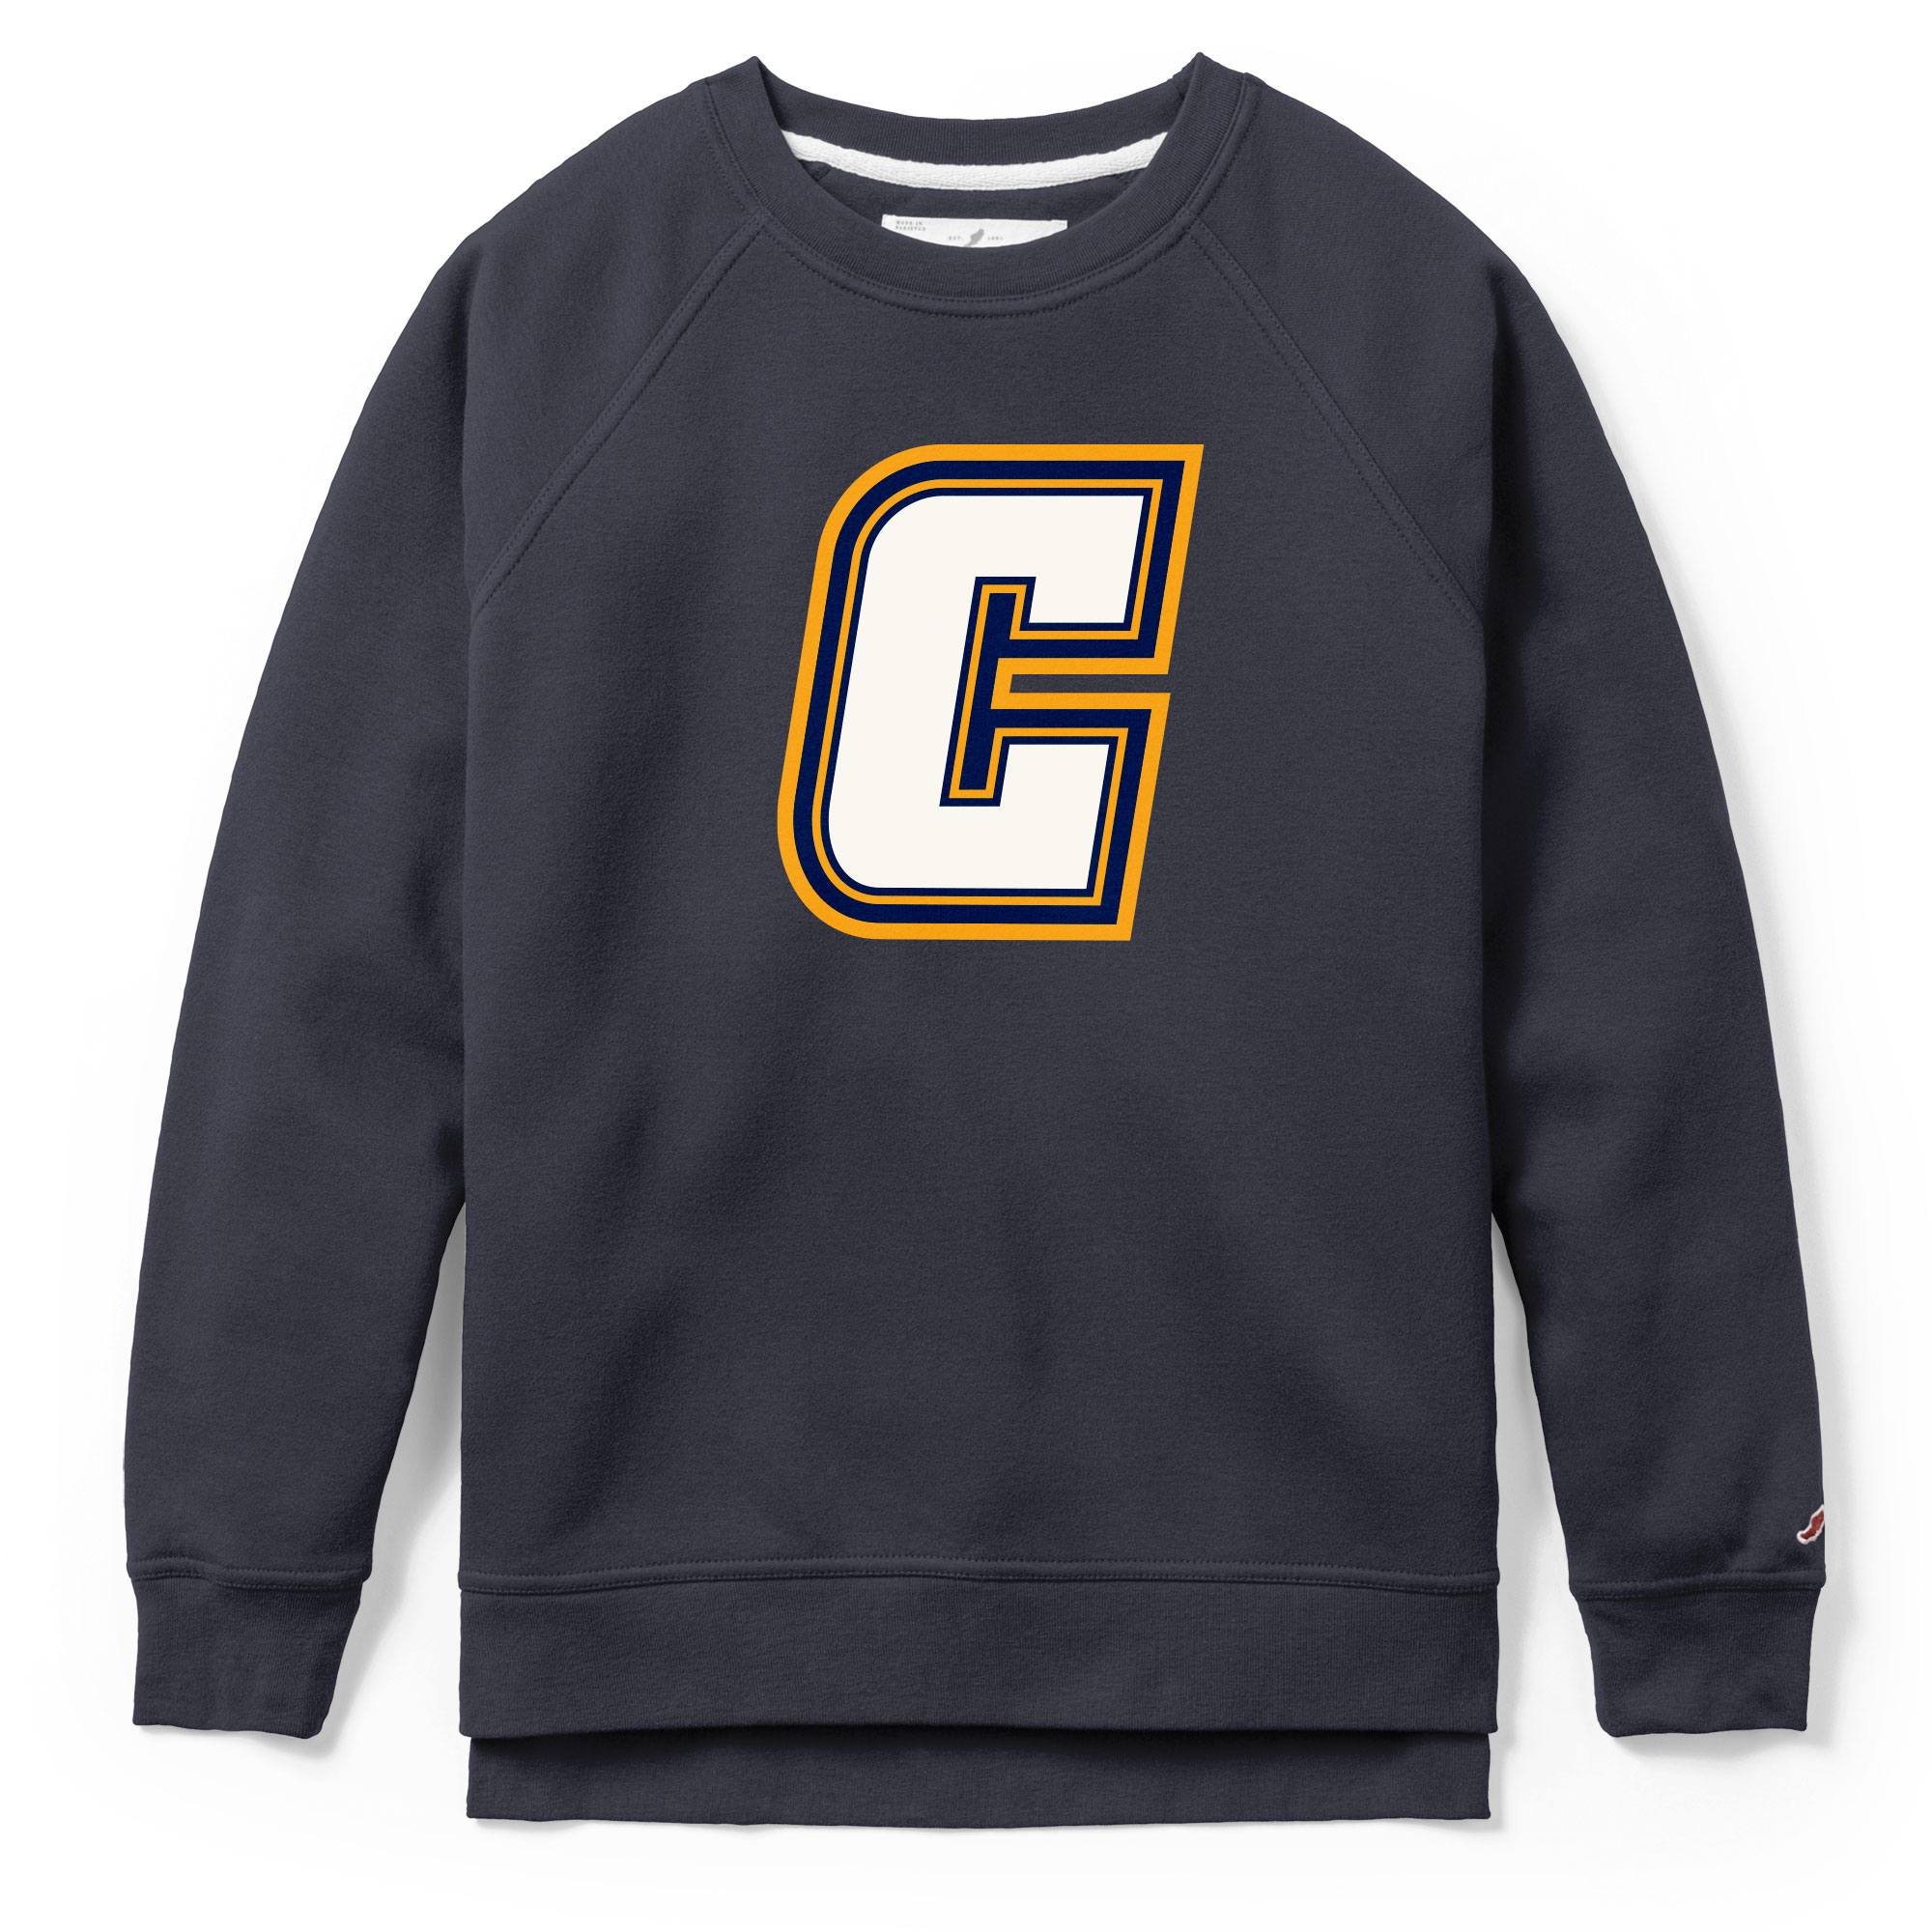 Image For Clearance Long Sleeve Crew BLOCK C ACADEMY CREW